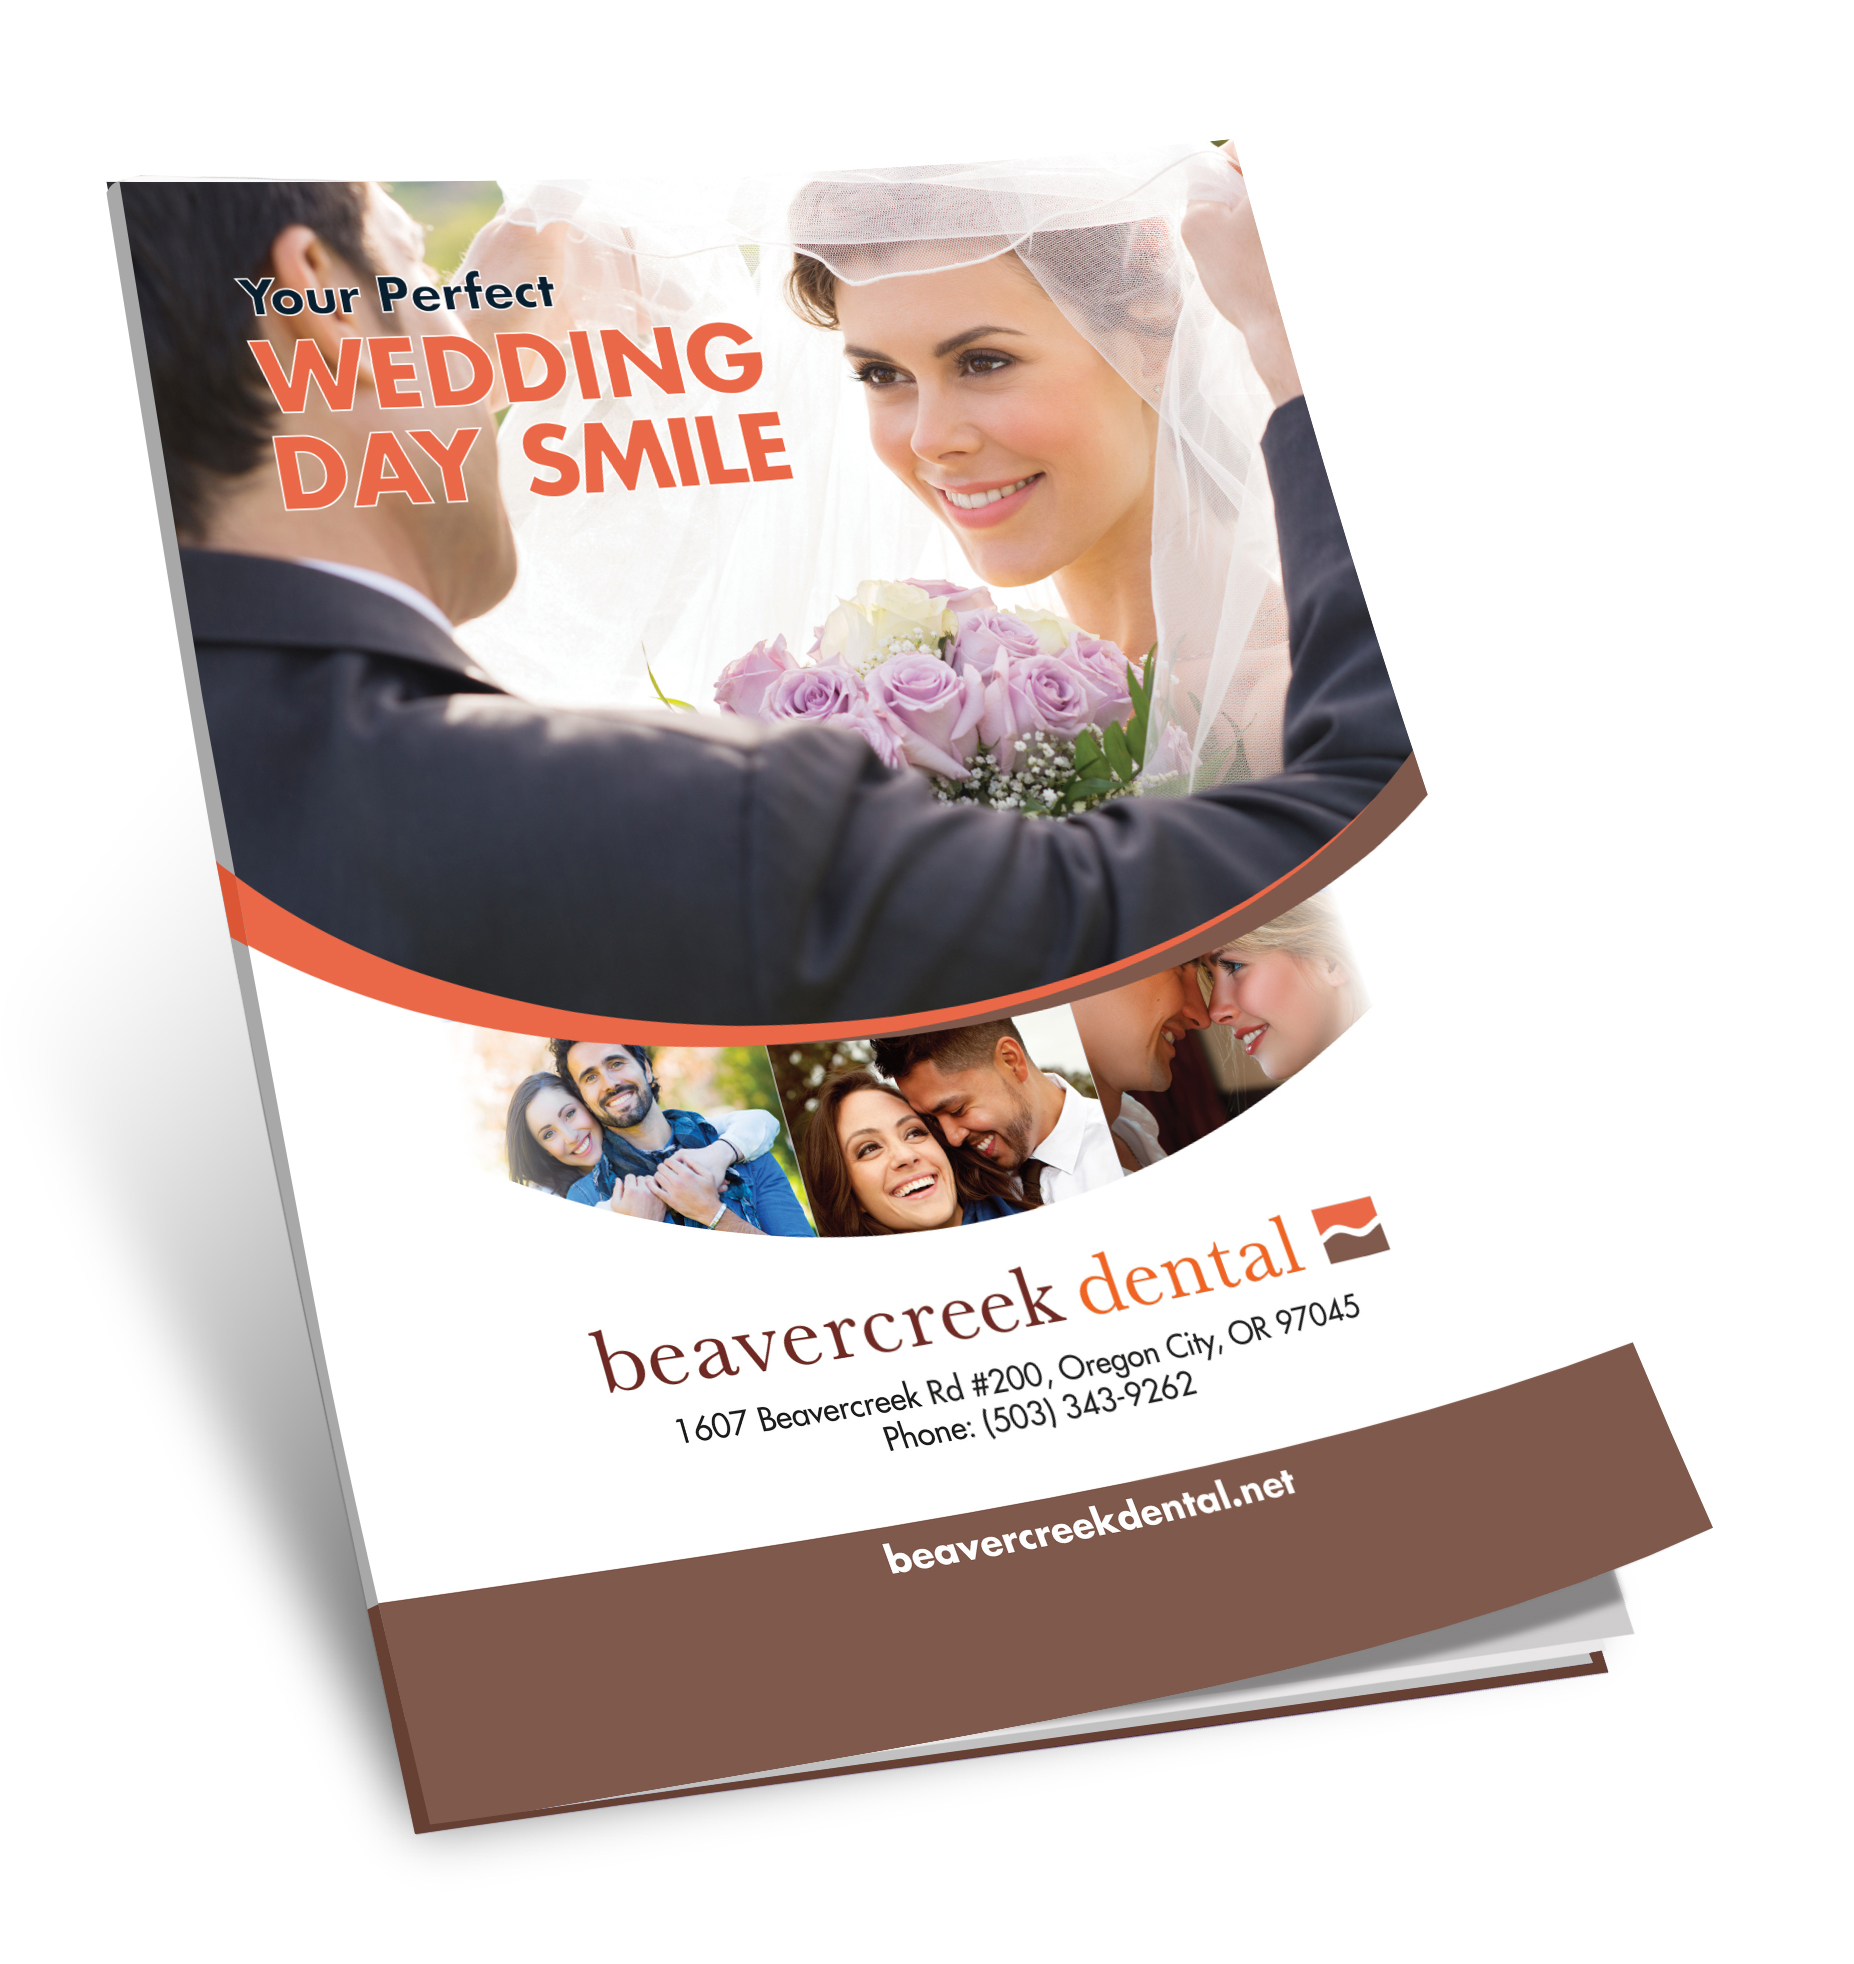 Cosmetic Dentistry Wedding Day Smile